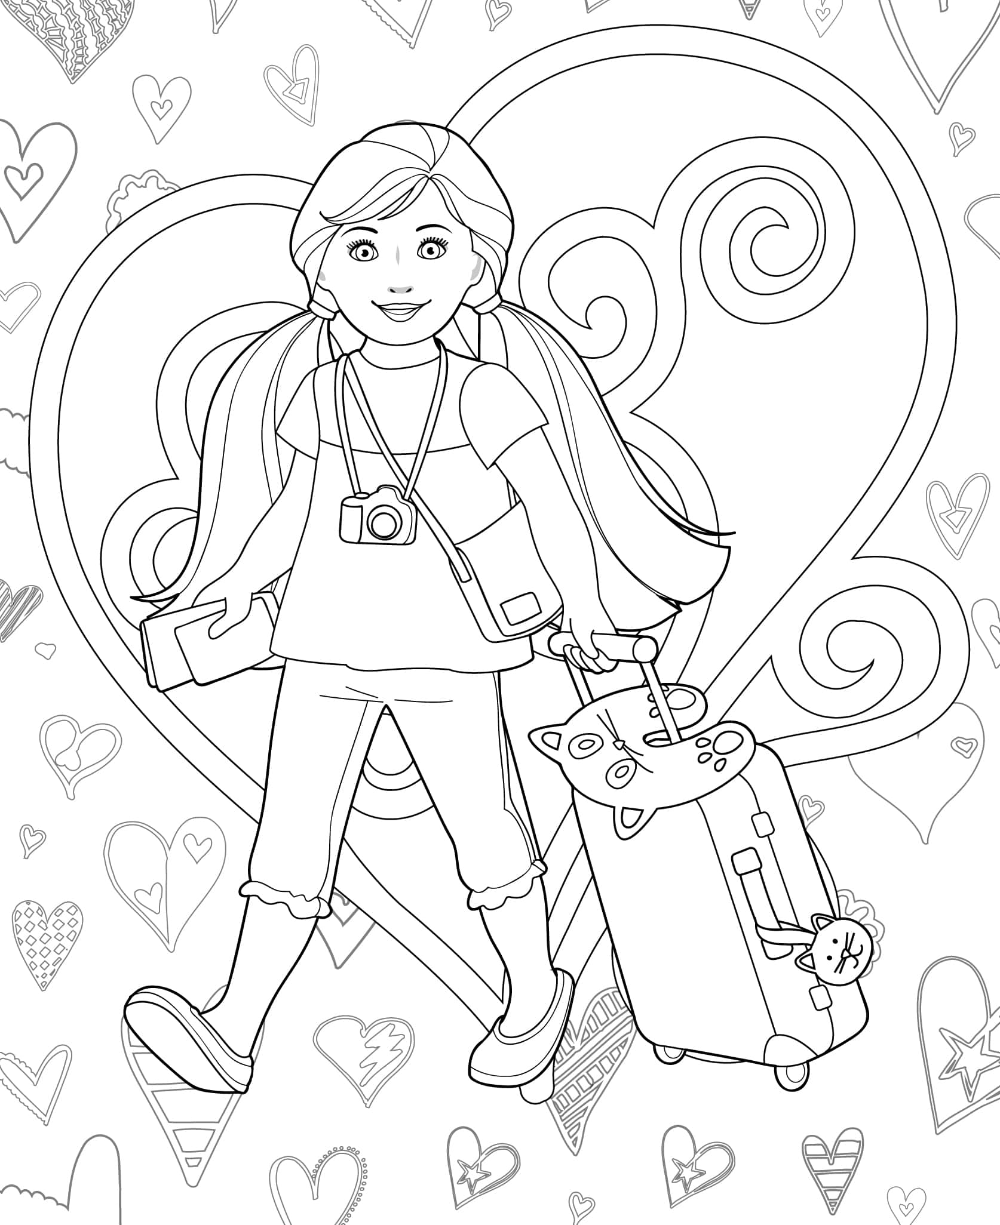 Printable Doll Coloring Pages Coloring Books Coloring Pages Our Generation Dolls